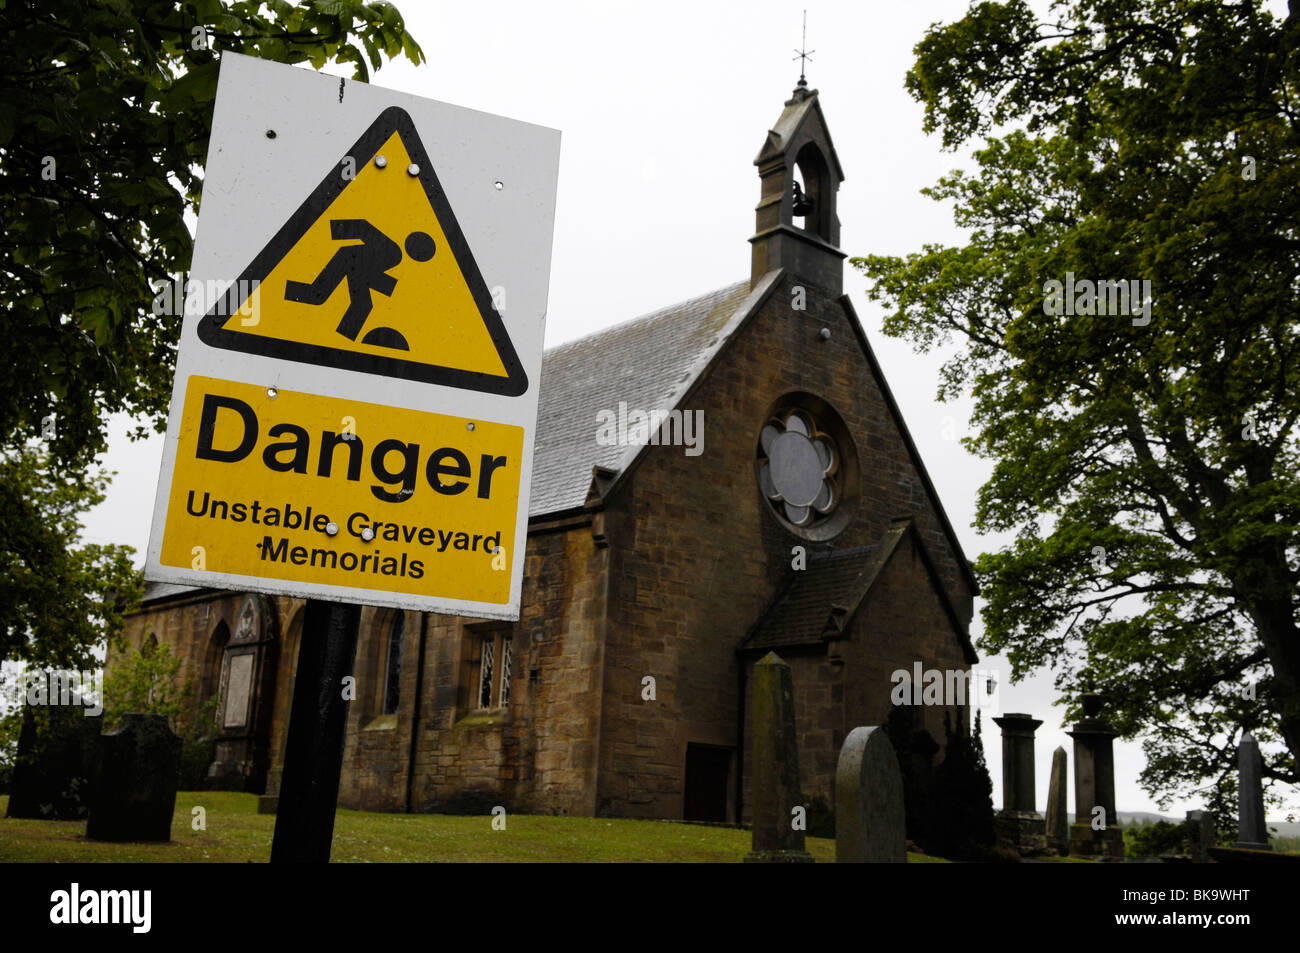 A sign in a church graveyard warns of unsafe headstones the sign says, Danger, unstable graveyard memorials. - Stock Image